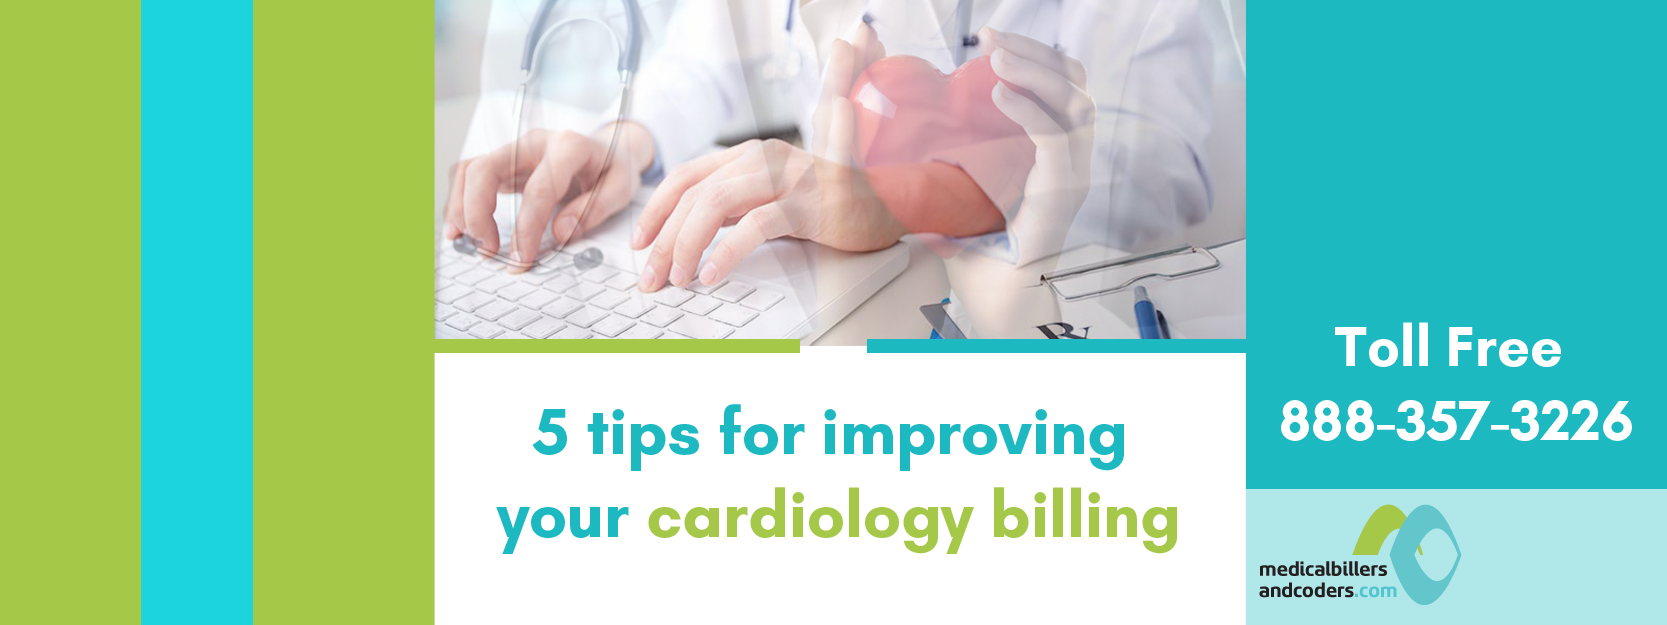 5-tips-for-improving-your-cardiology-billing